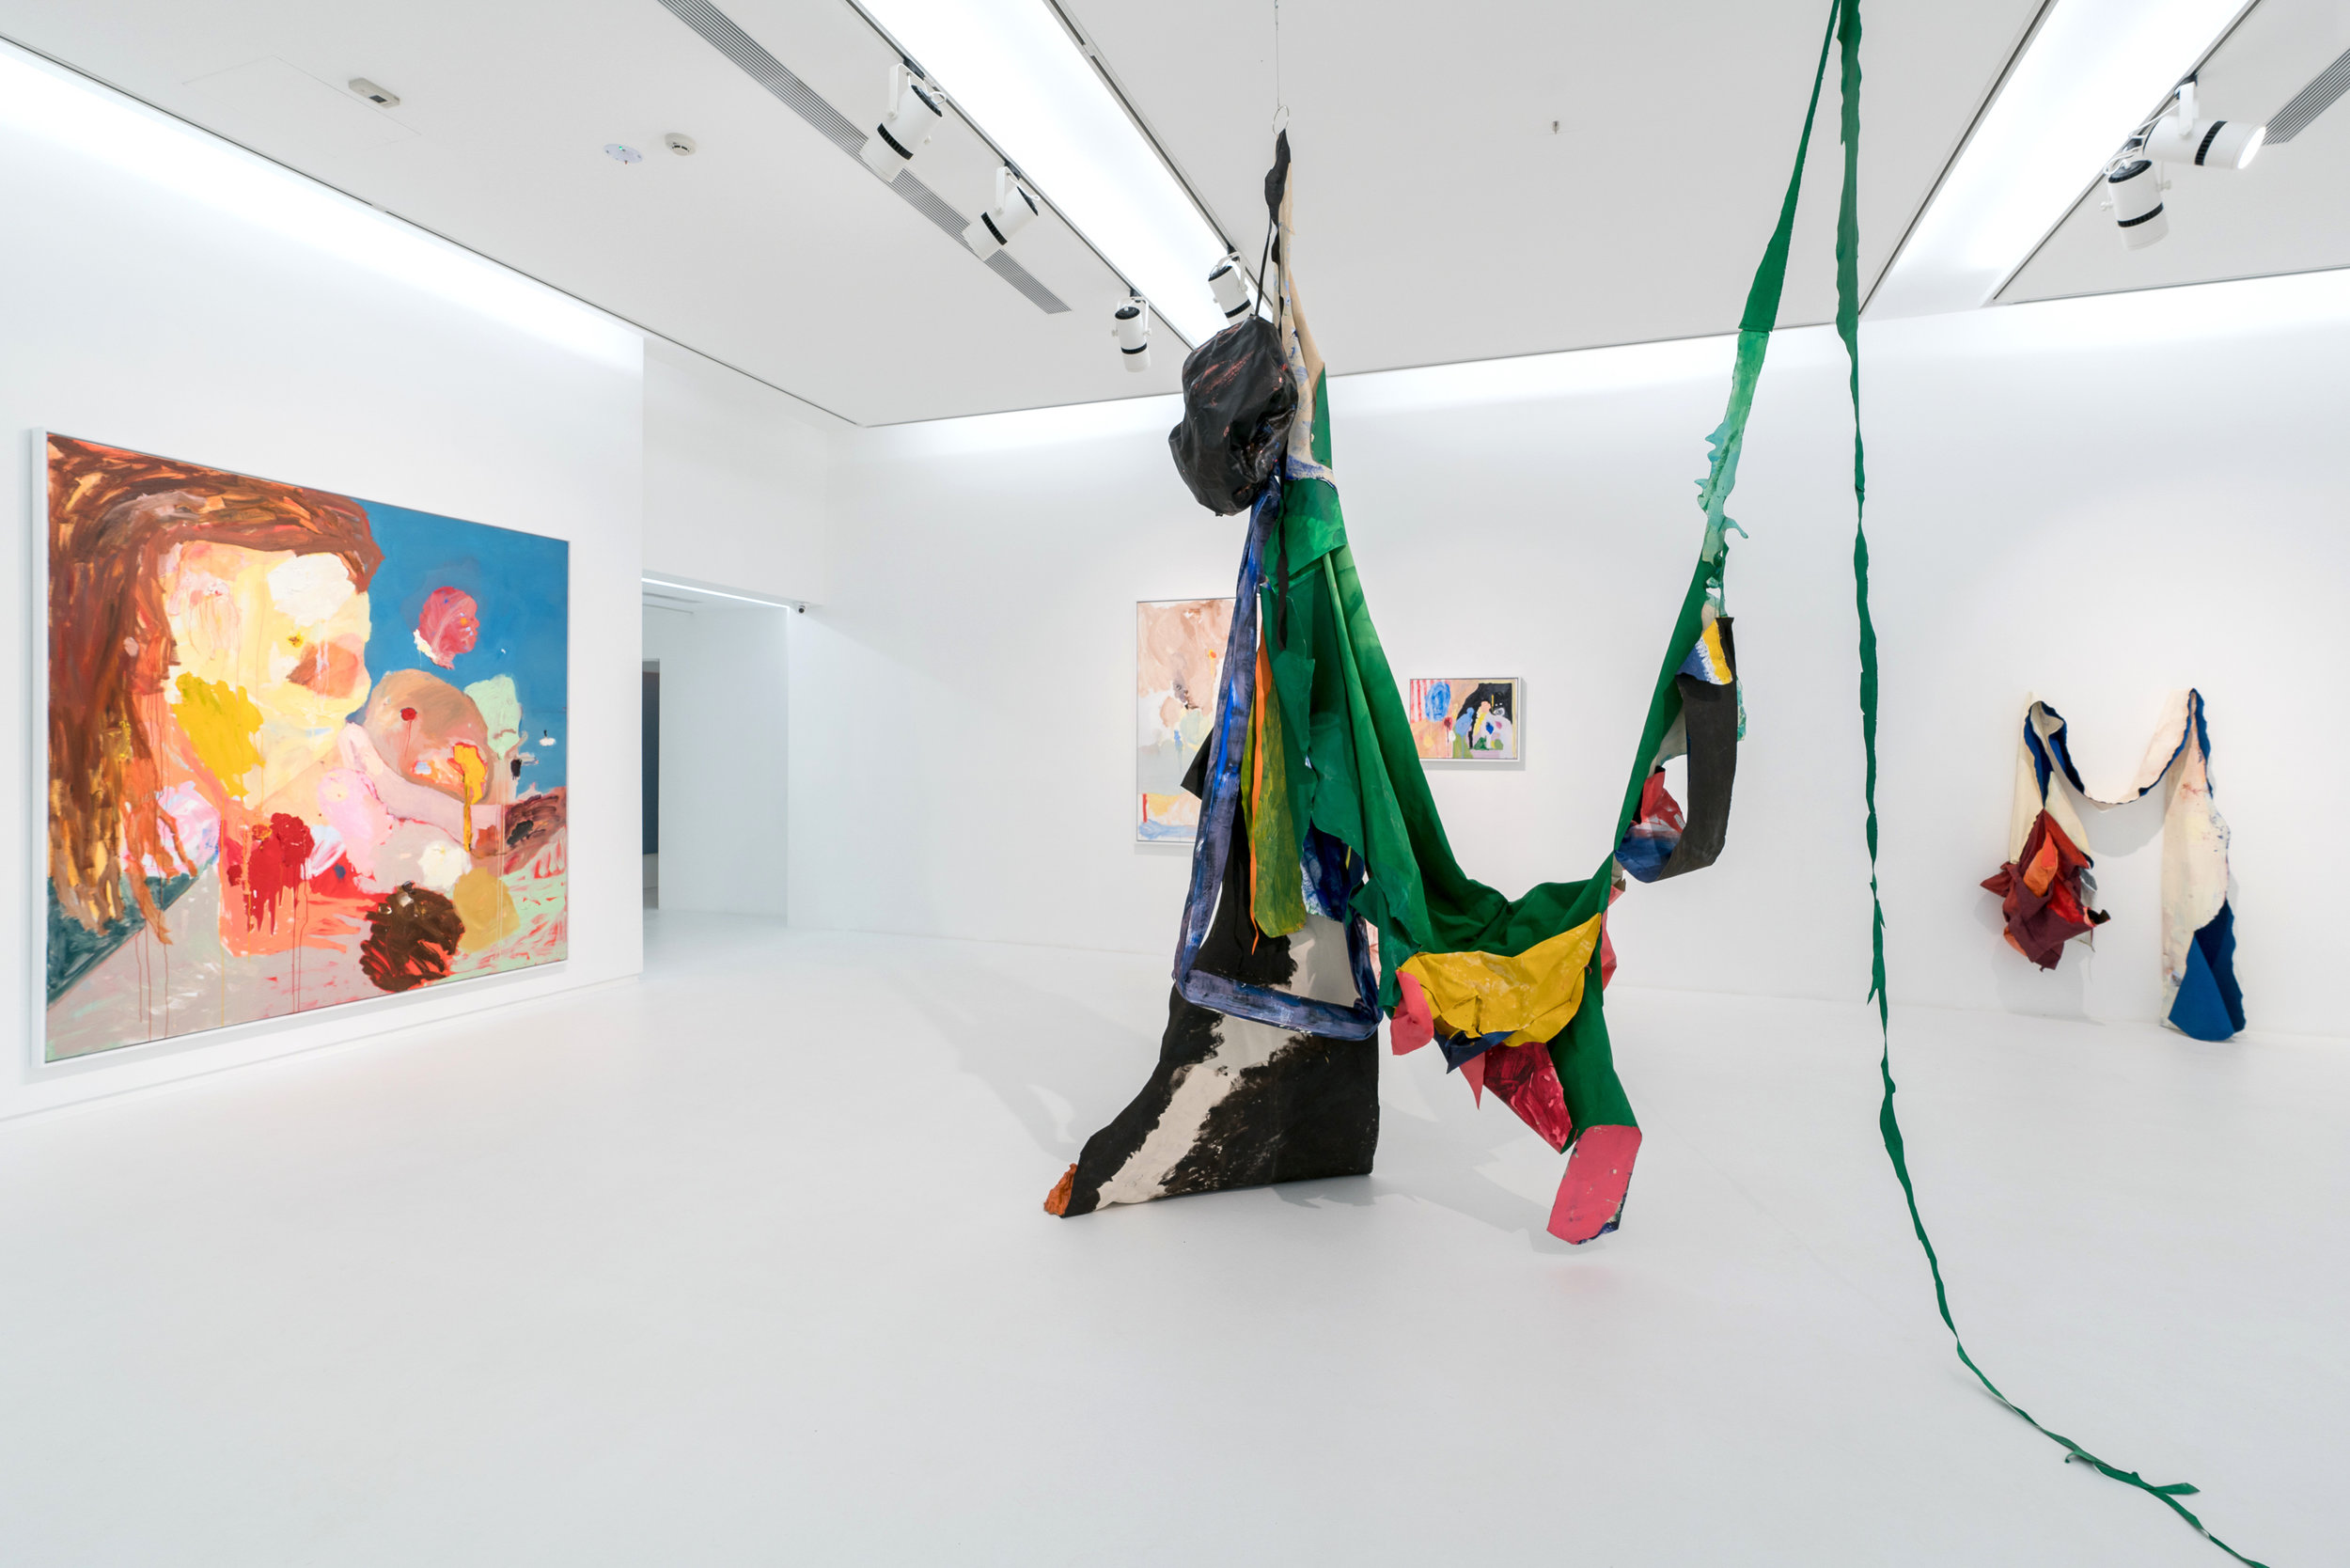 Installation view - Sullivan & Strumpf Singapore